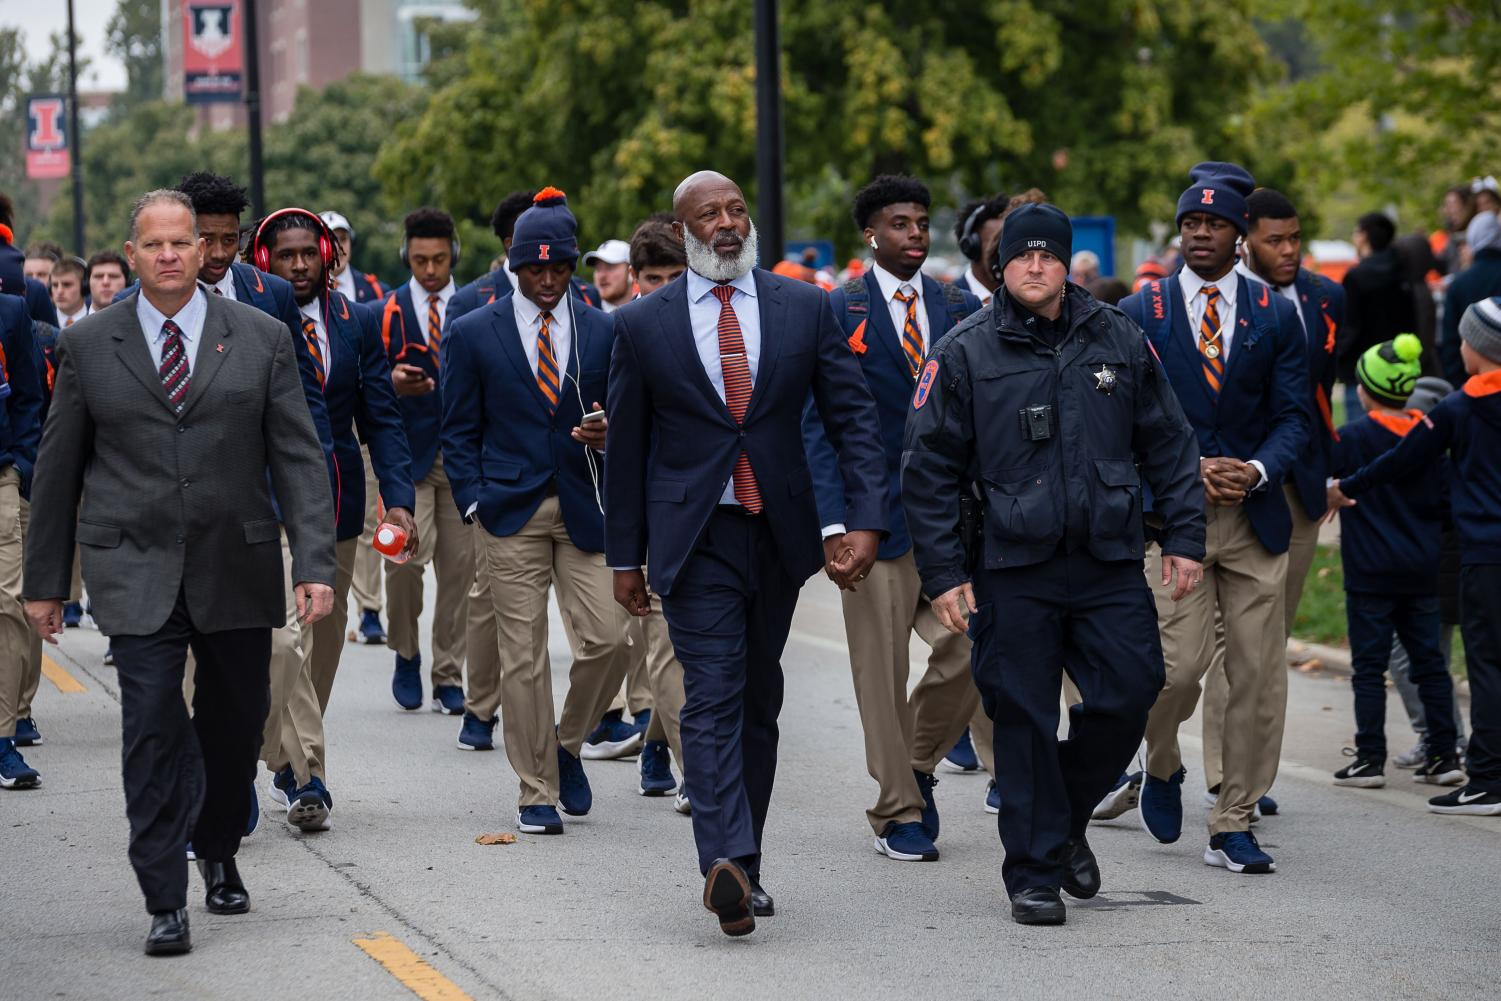 Illinois head coach Lovie Smith walks with his team down First Street before the game against Purdue at Memorial Stadium on Oct. 13. Georgia tight end Luke Ford has announced he is transferring to Illinois due to familial reasons.